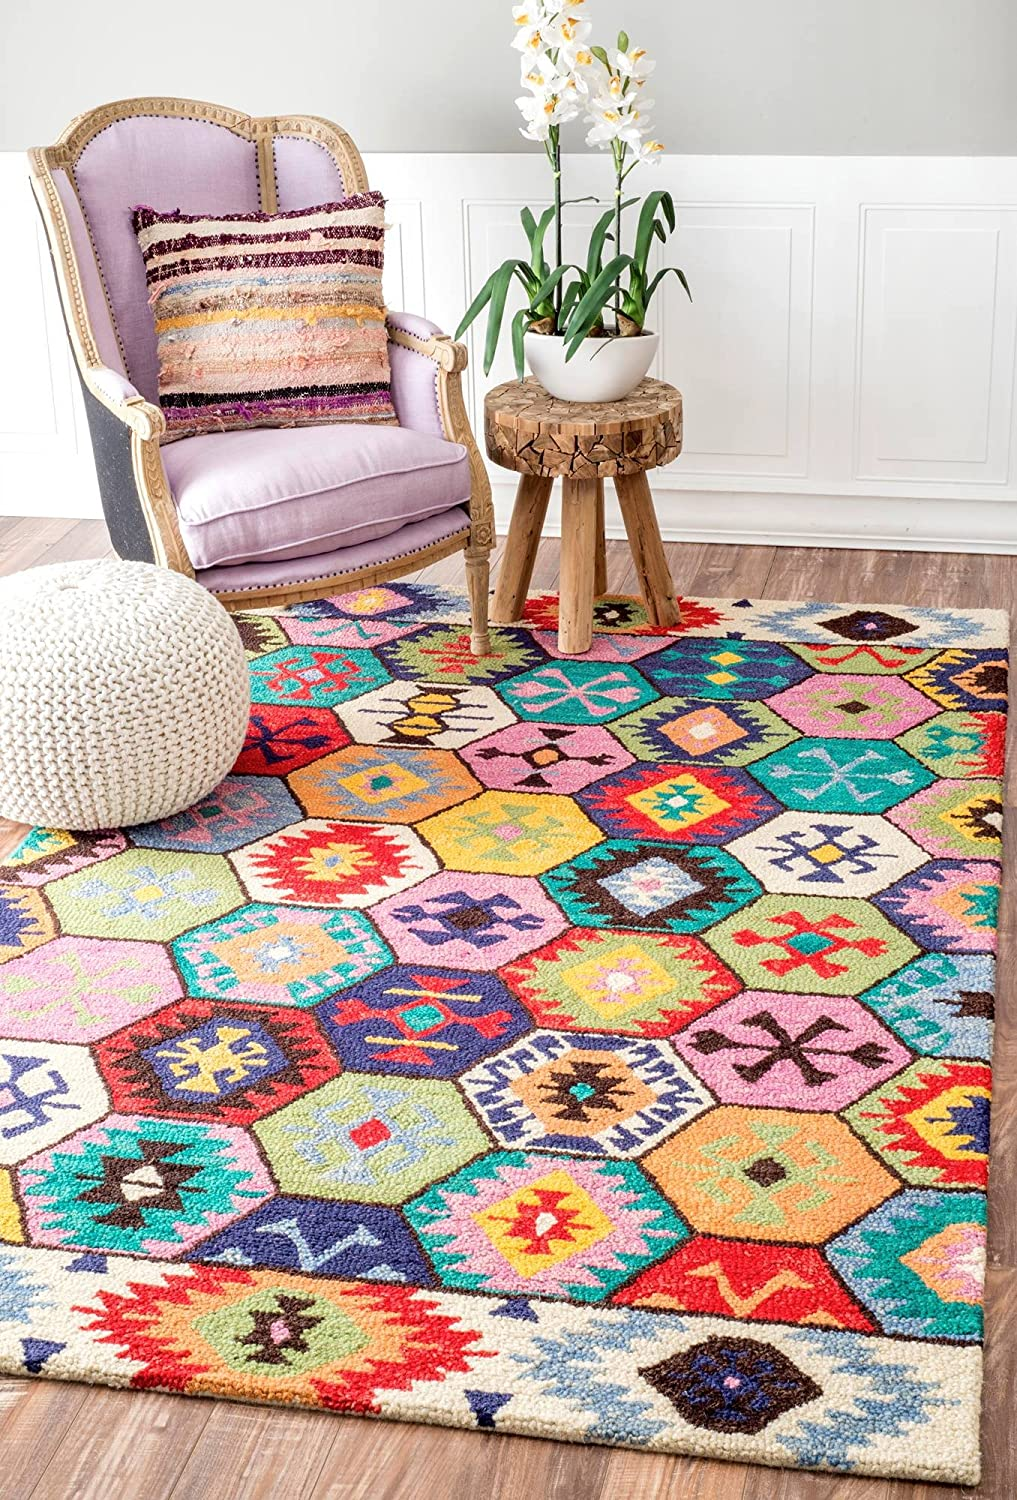 nuLOOM Giuseppina Hand Tufted Wool Area x Challenge the lowest price of famous Japan ☆ Rug 4' Multi 6'